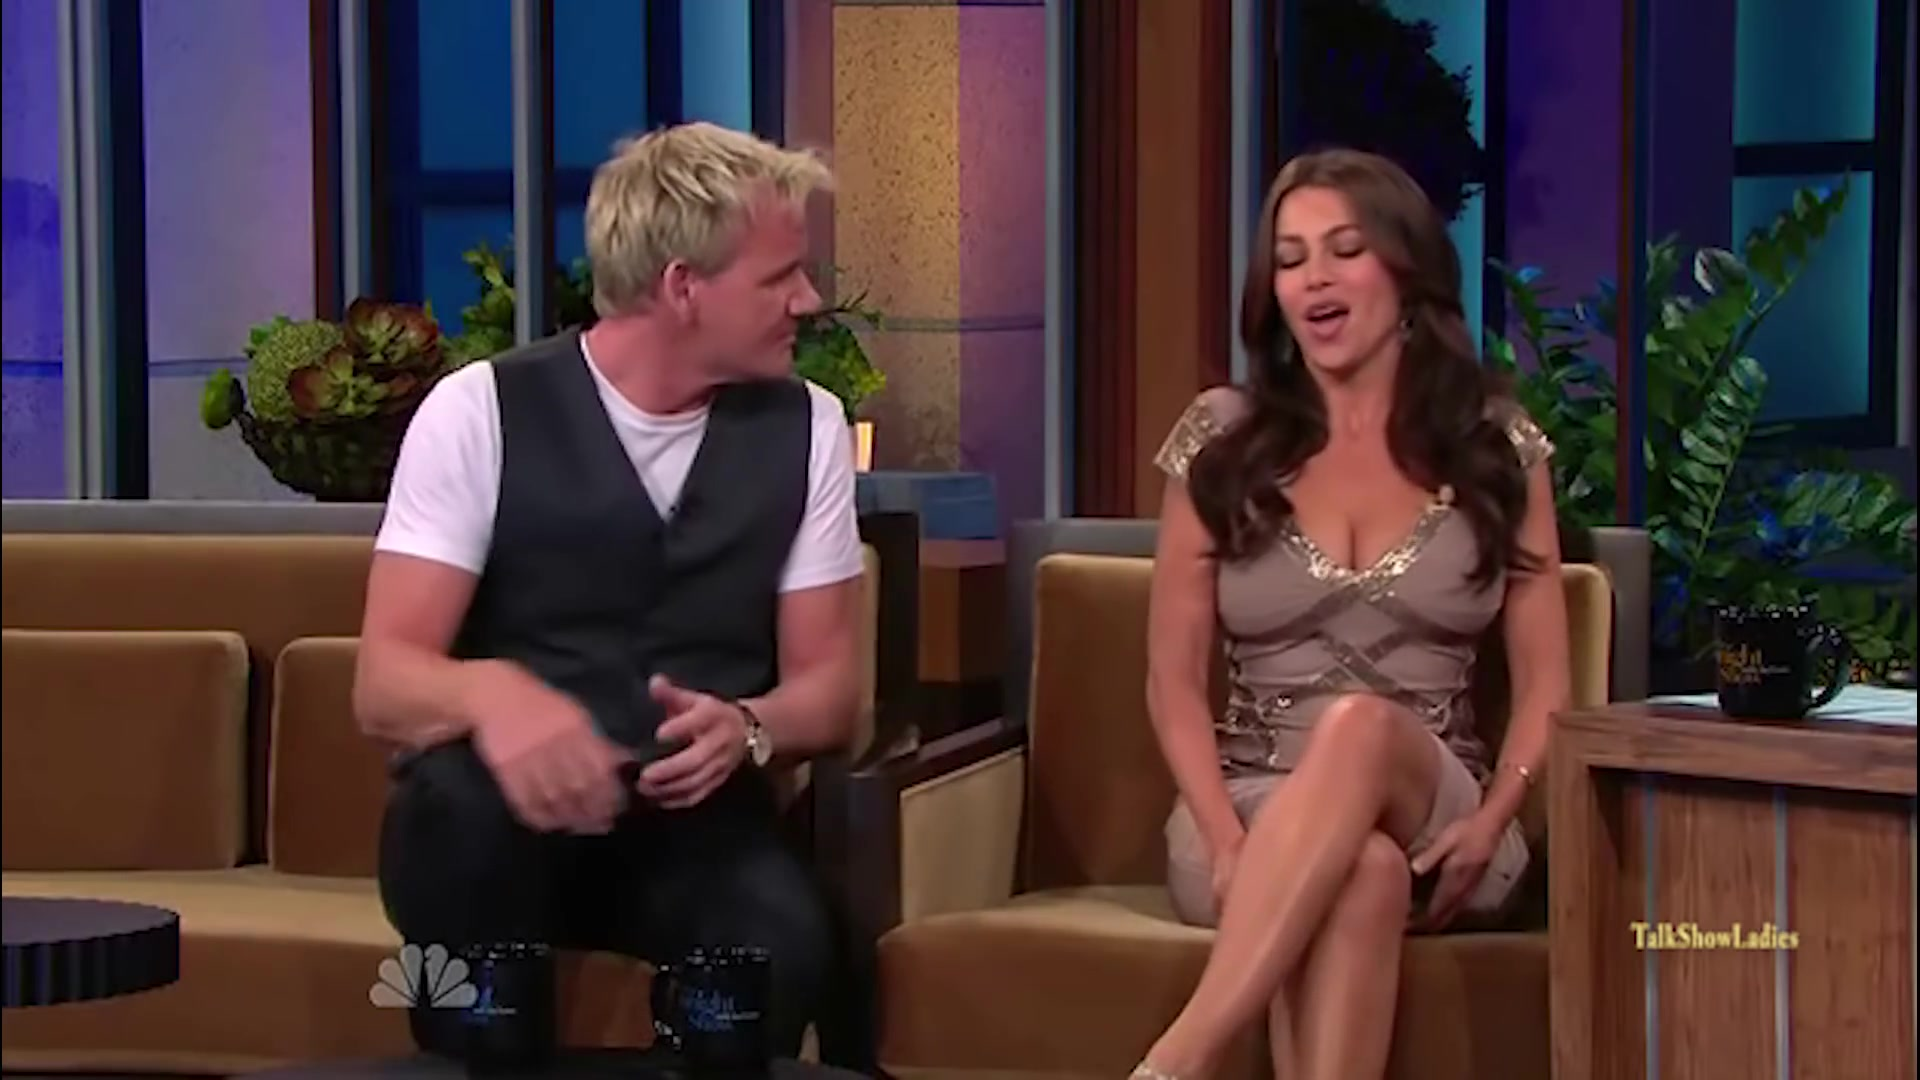 Gordon Ramsay meets Sofia Vergara 2010